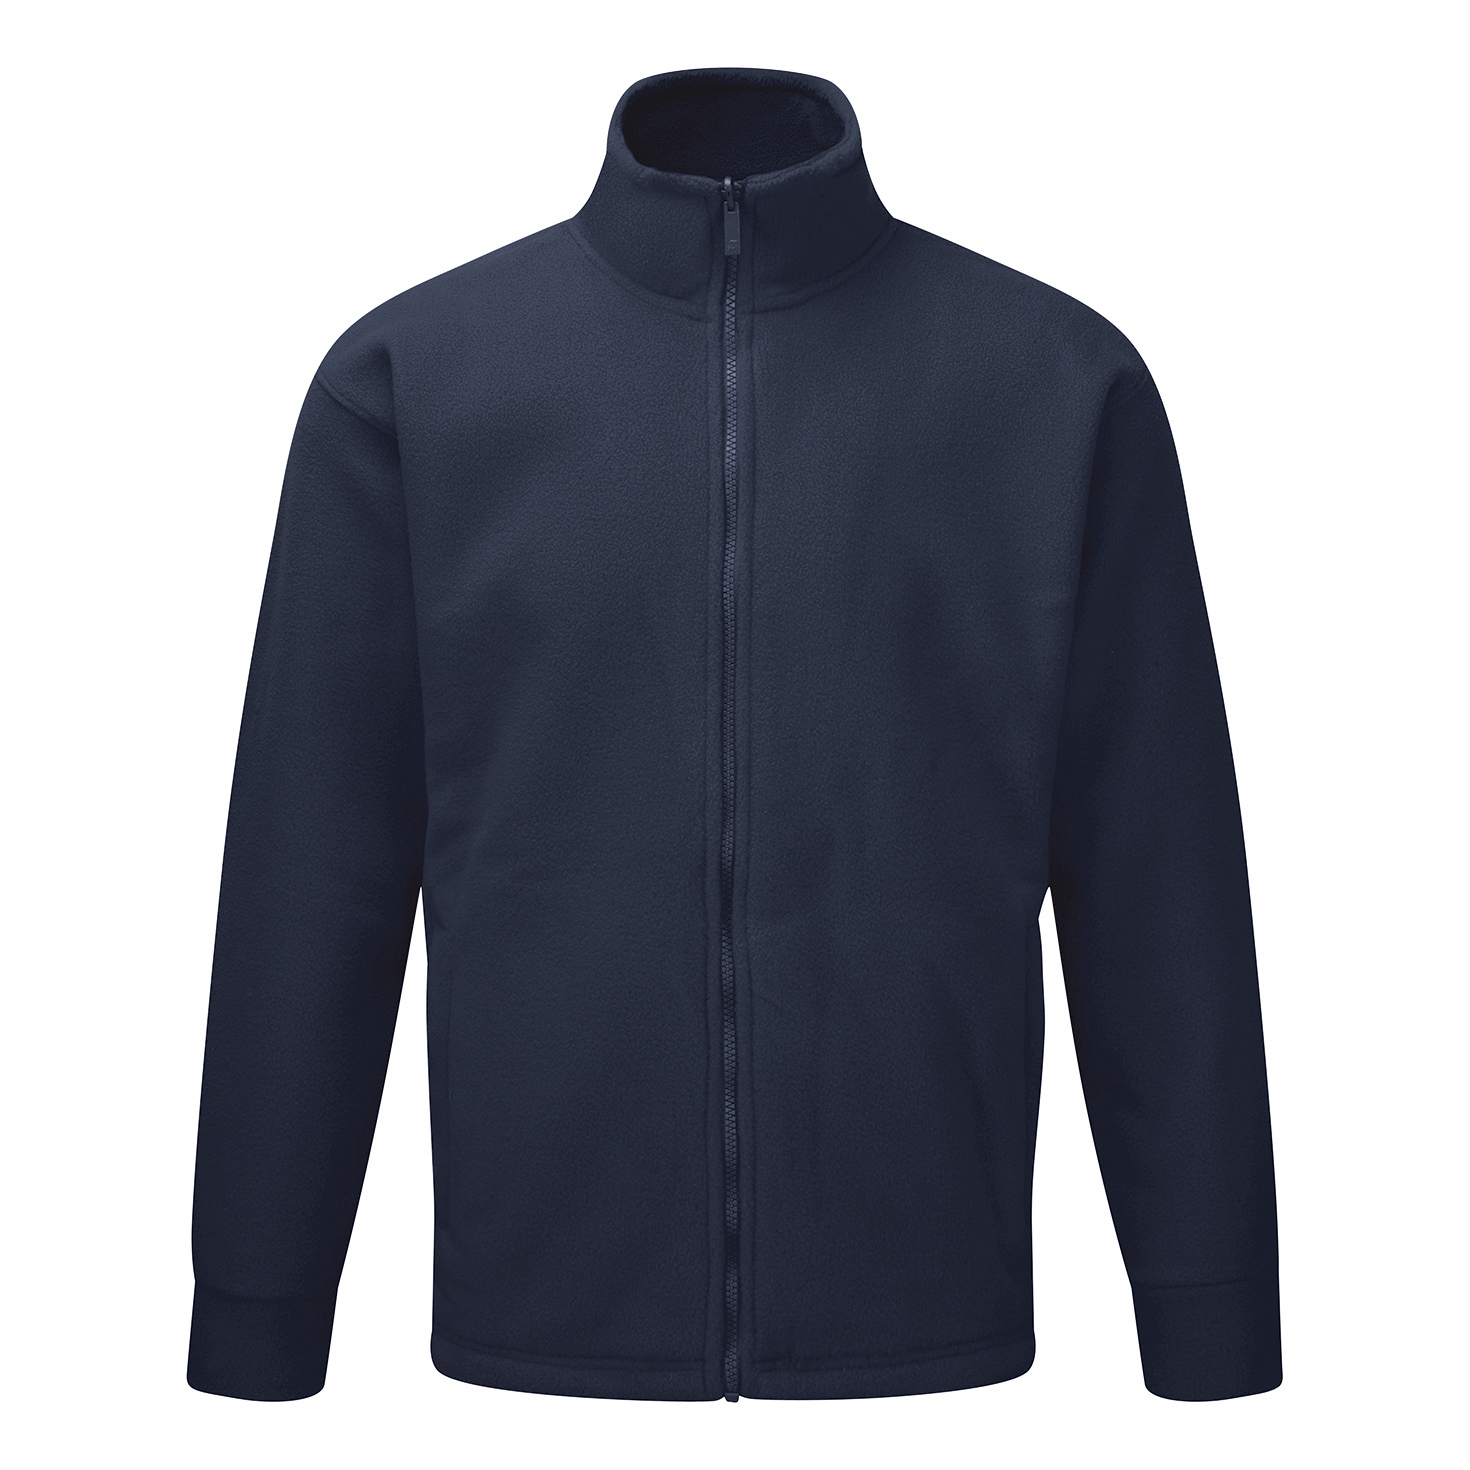 Classic Fleece Jacket Elasticated Cuffs Full Zip Front Medium Navy Blue Ref FLJNS 1-3 Days Lead Time